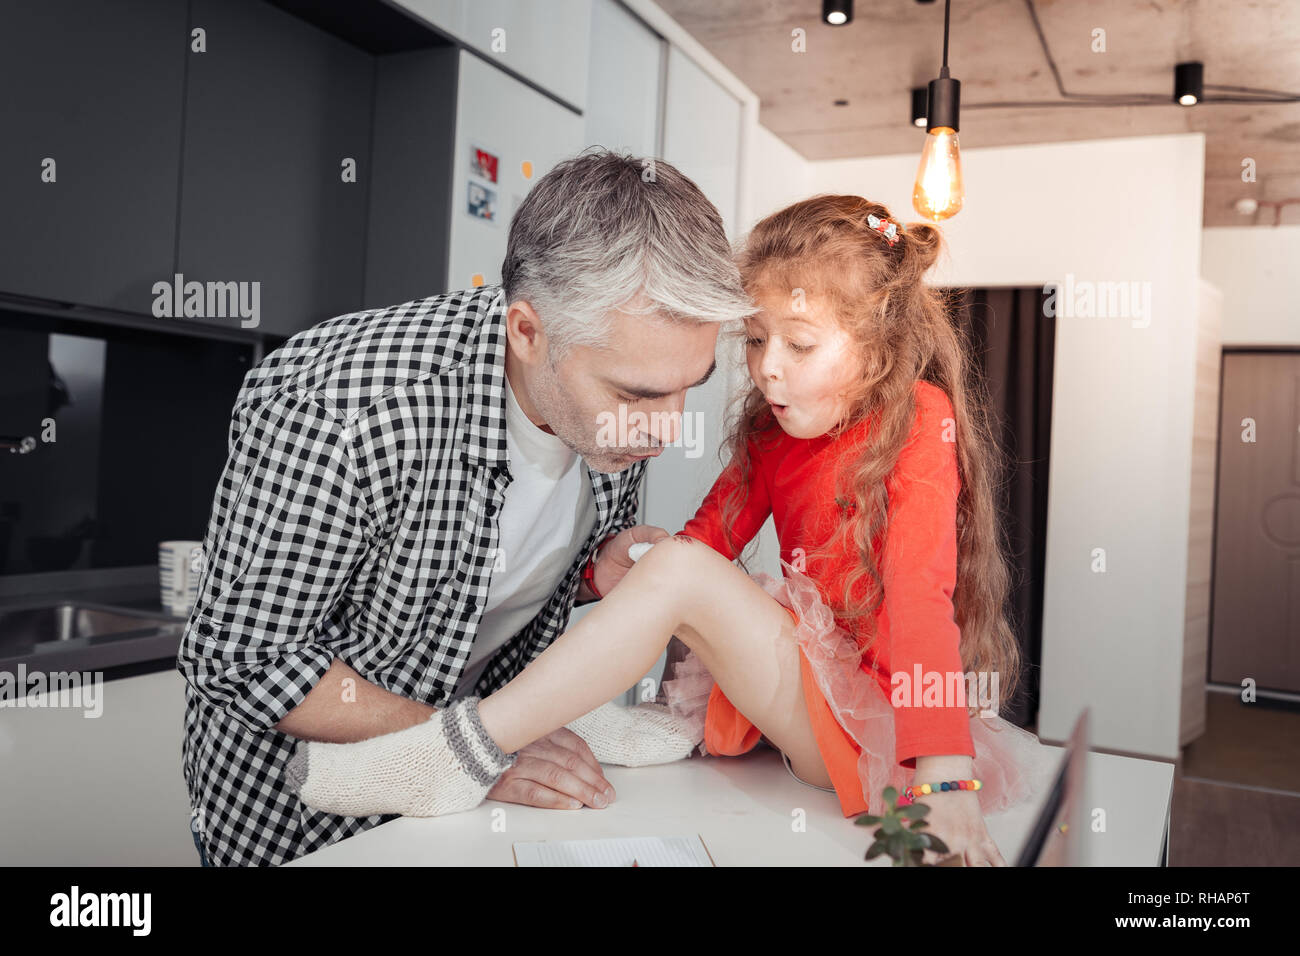 Pretty small long-haired girl and her father looking concentrated - Stock Image